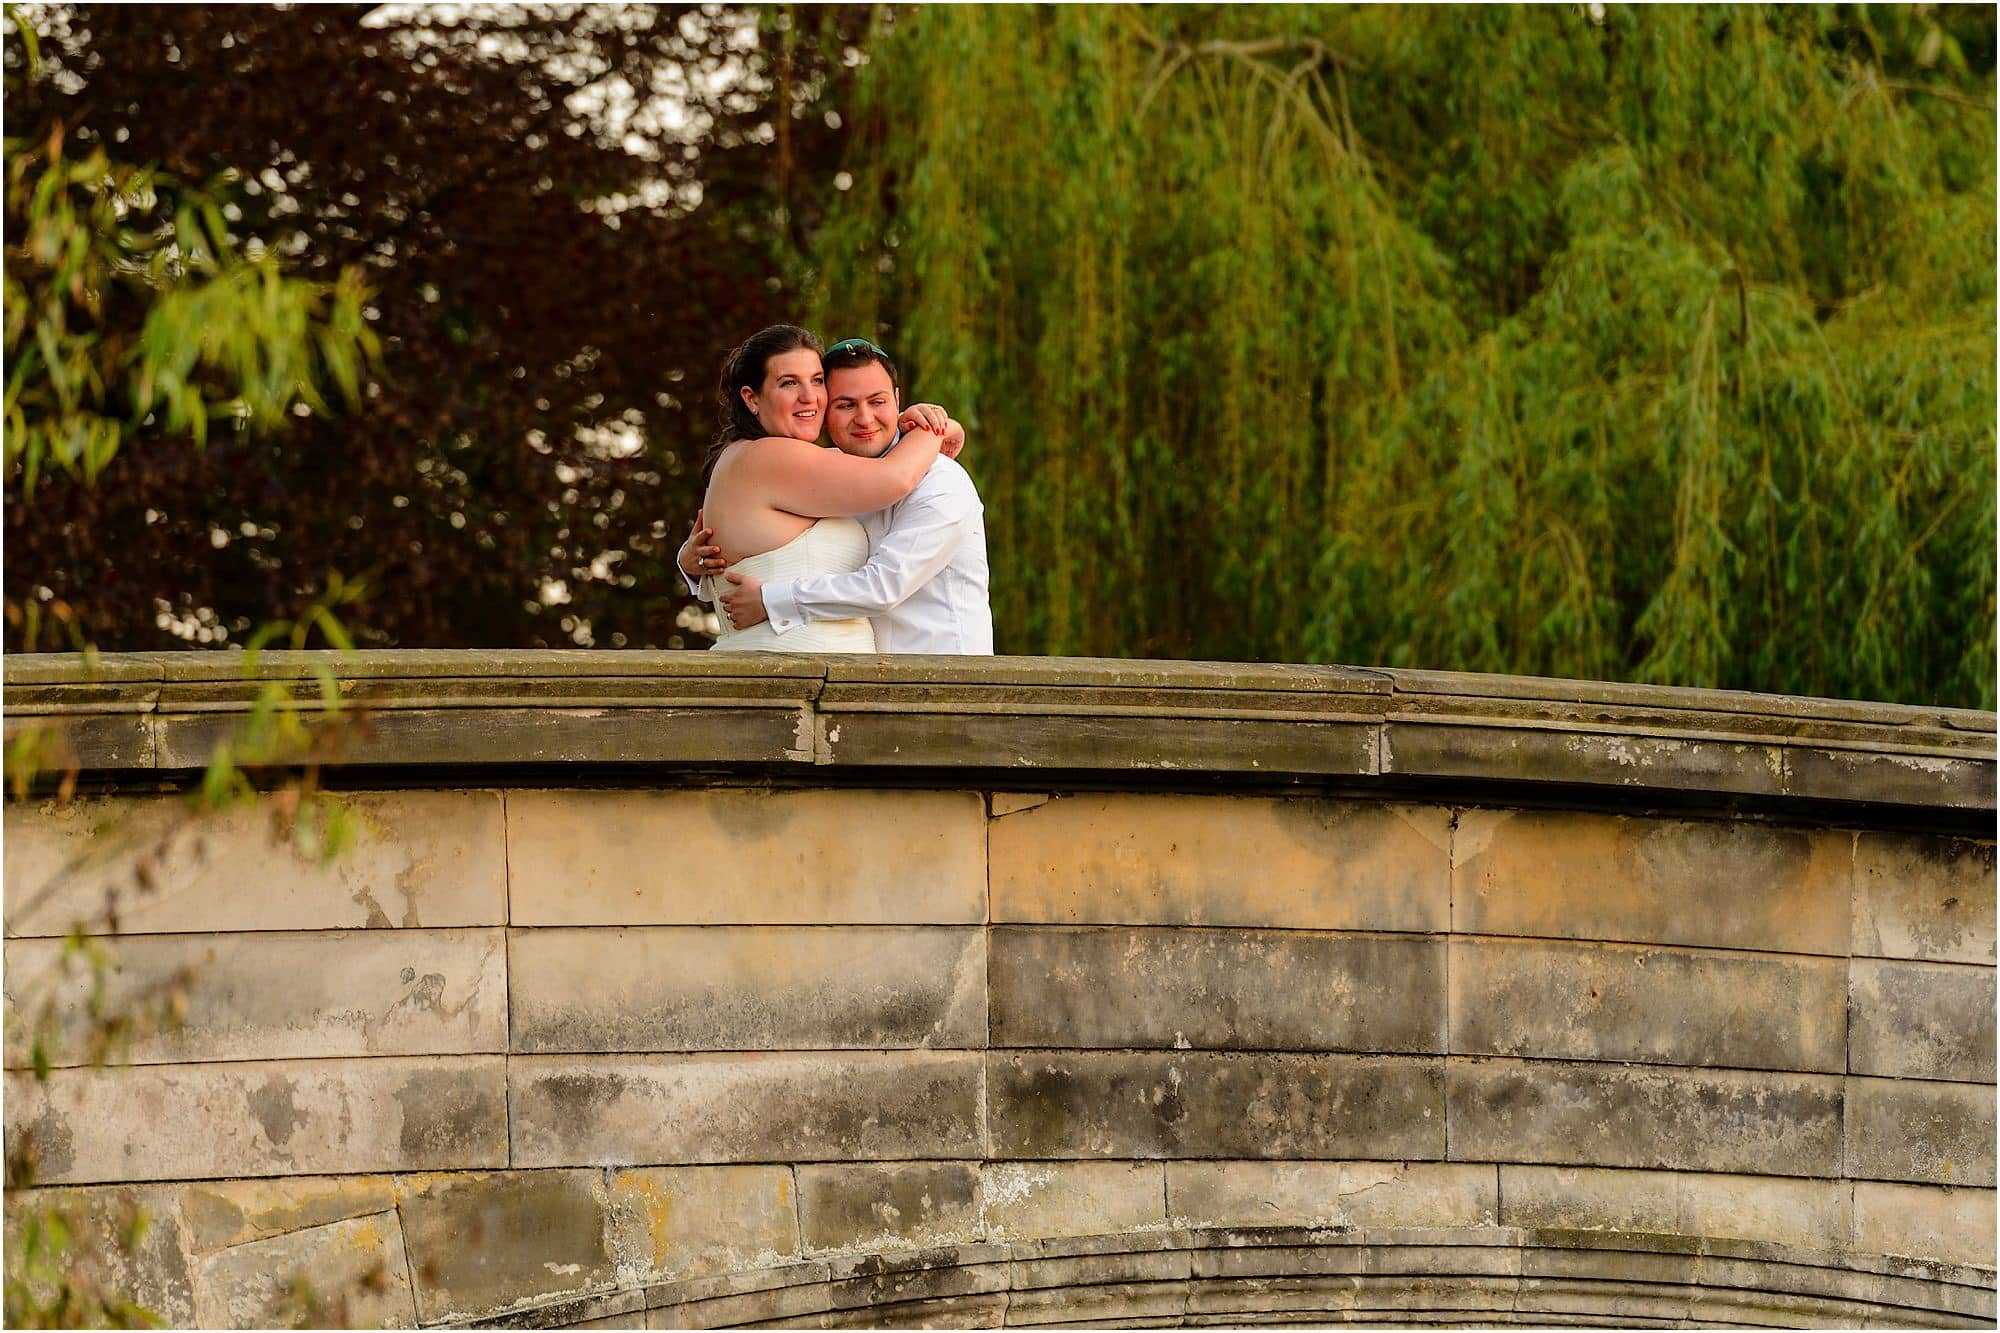 cuddle on the bridge over the river Cam